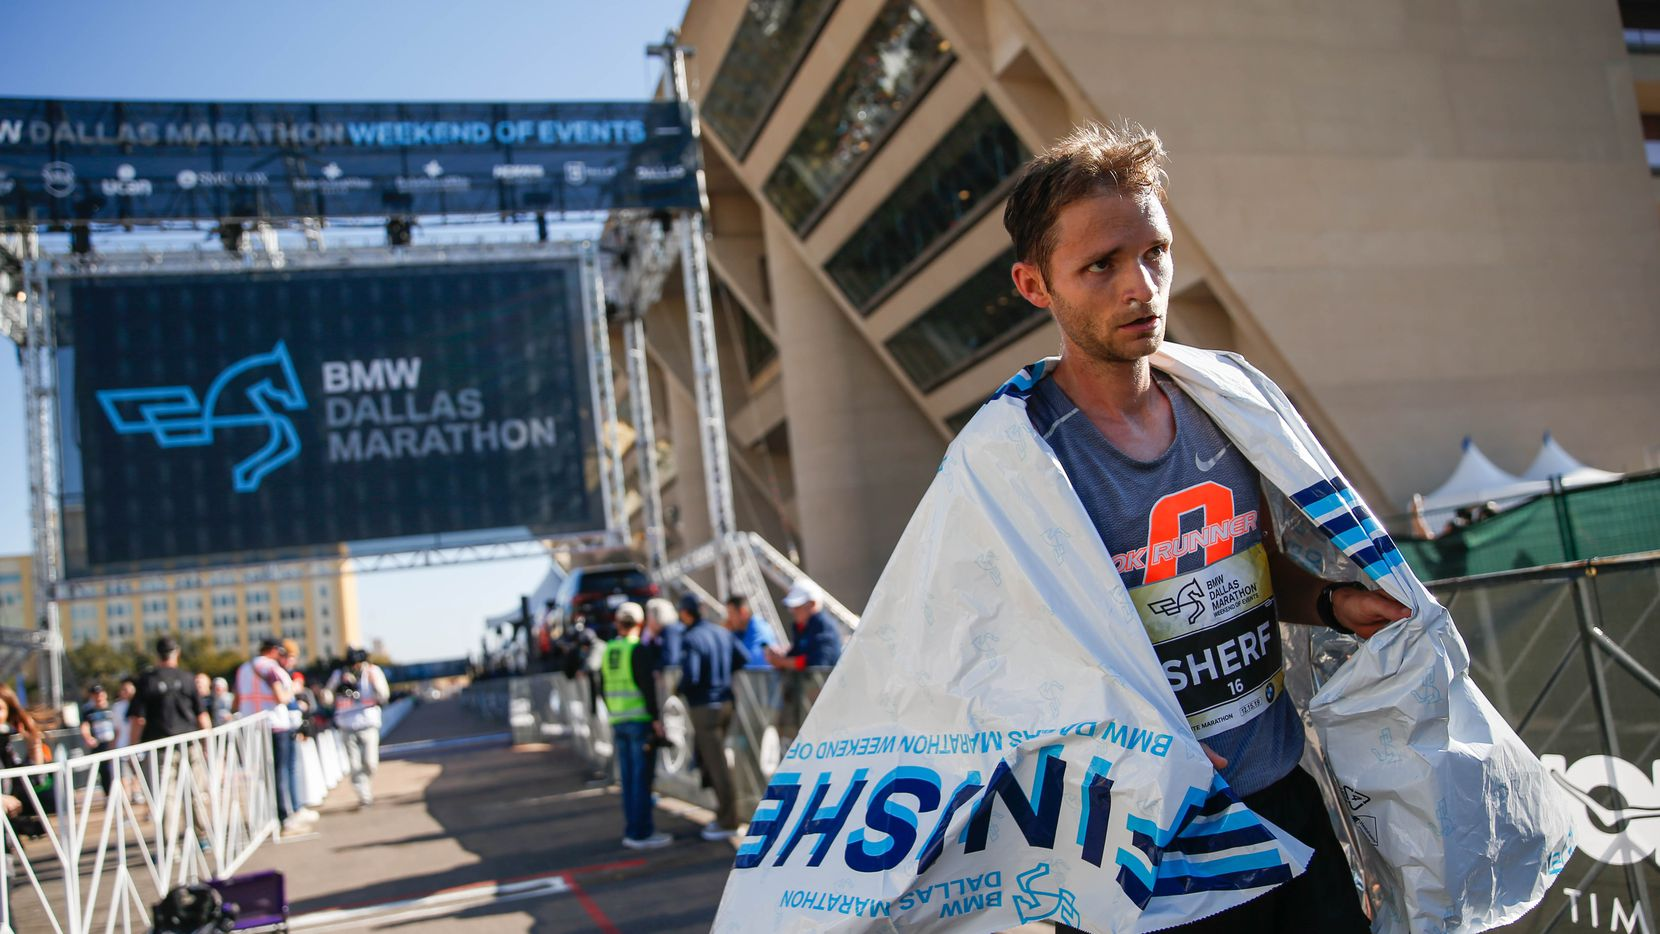 Aaron Sherf, winner of the BMW Dallas Marathon with a time of 2:31:18 on Dec. 15, 2019 in Dallas.